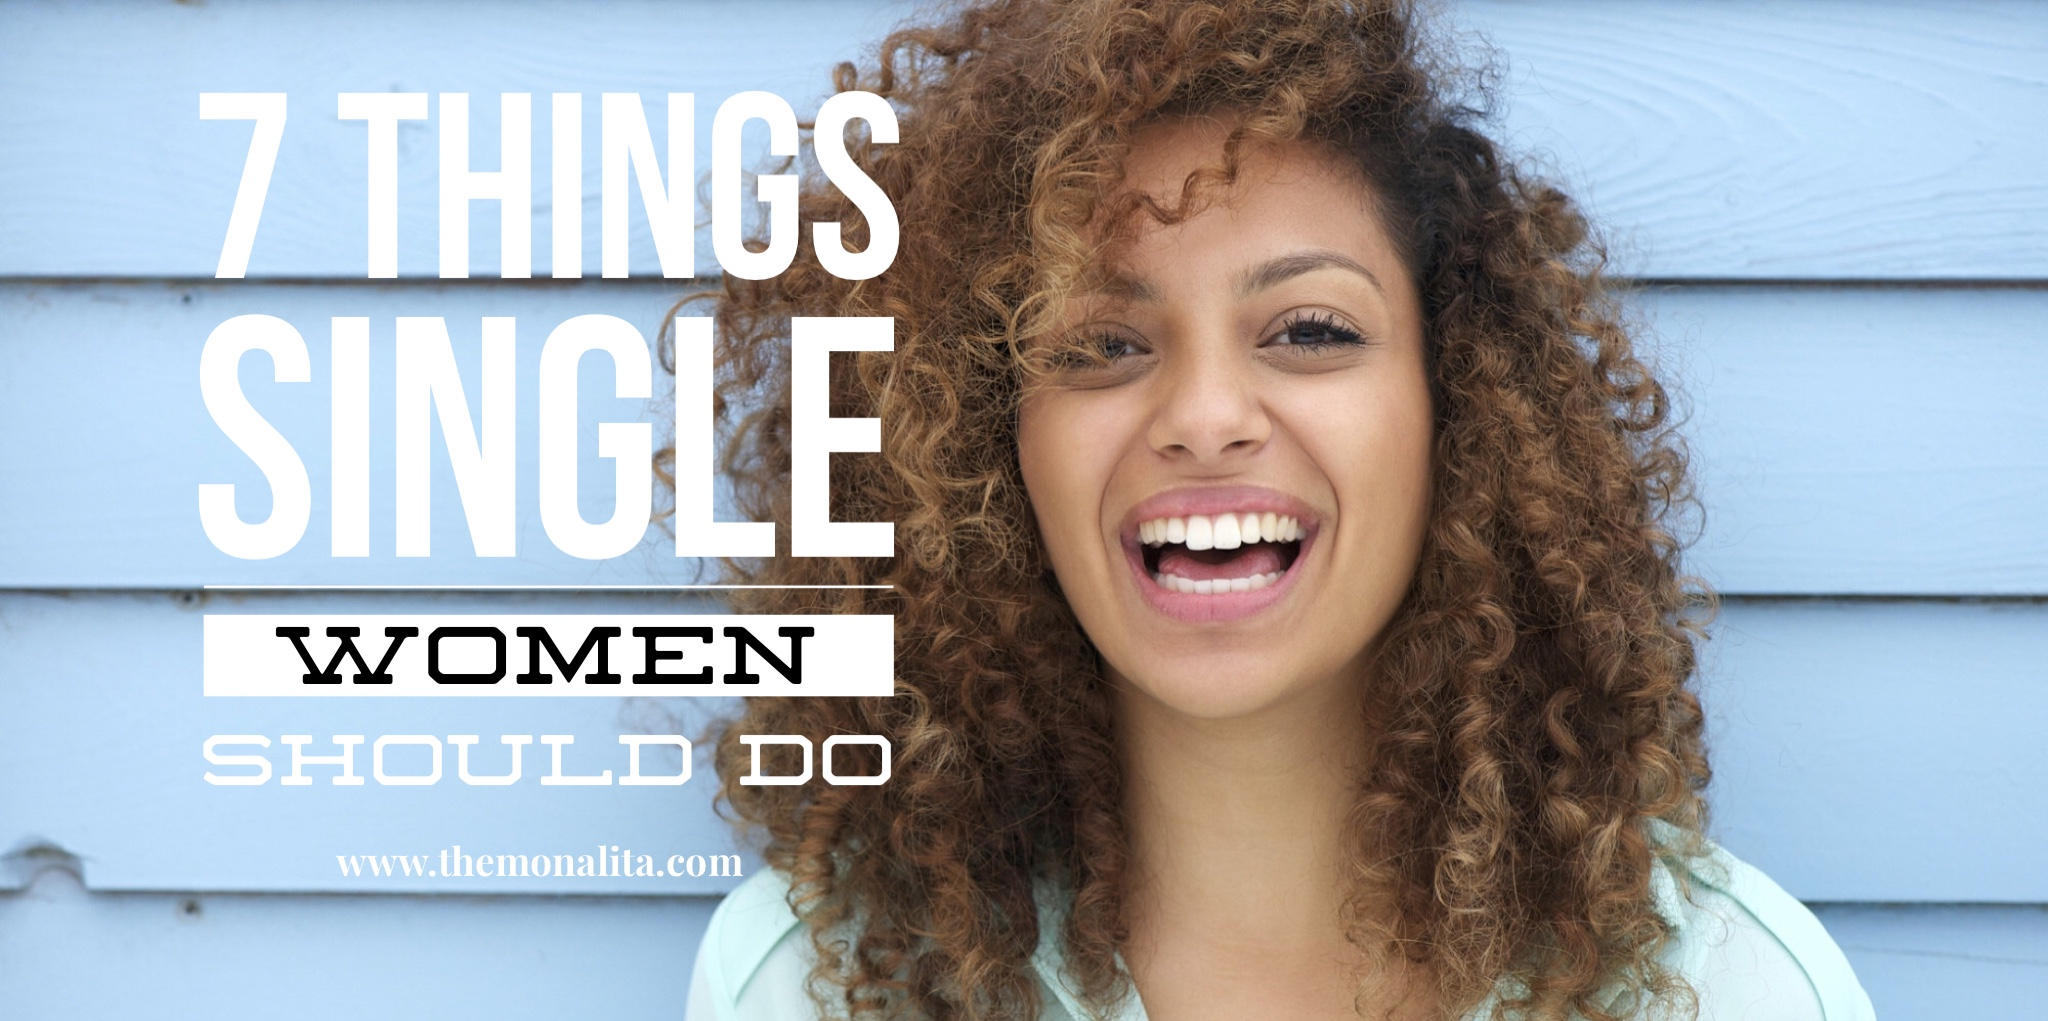 7 things single women should do